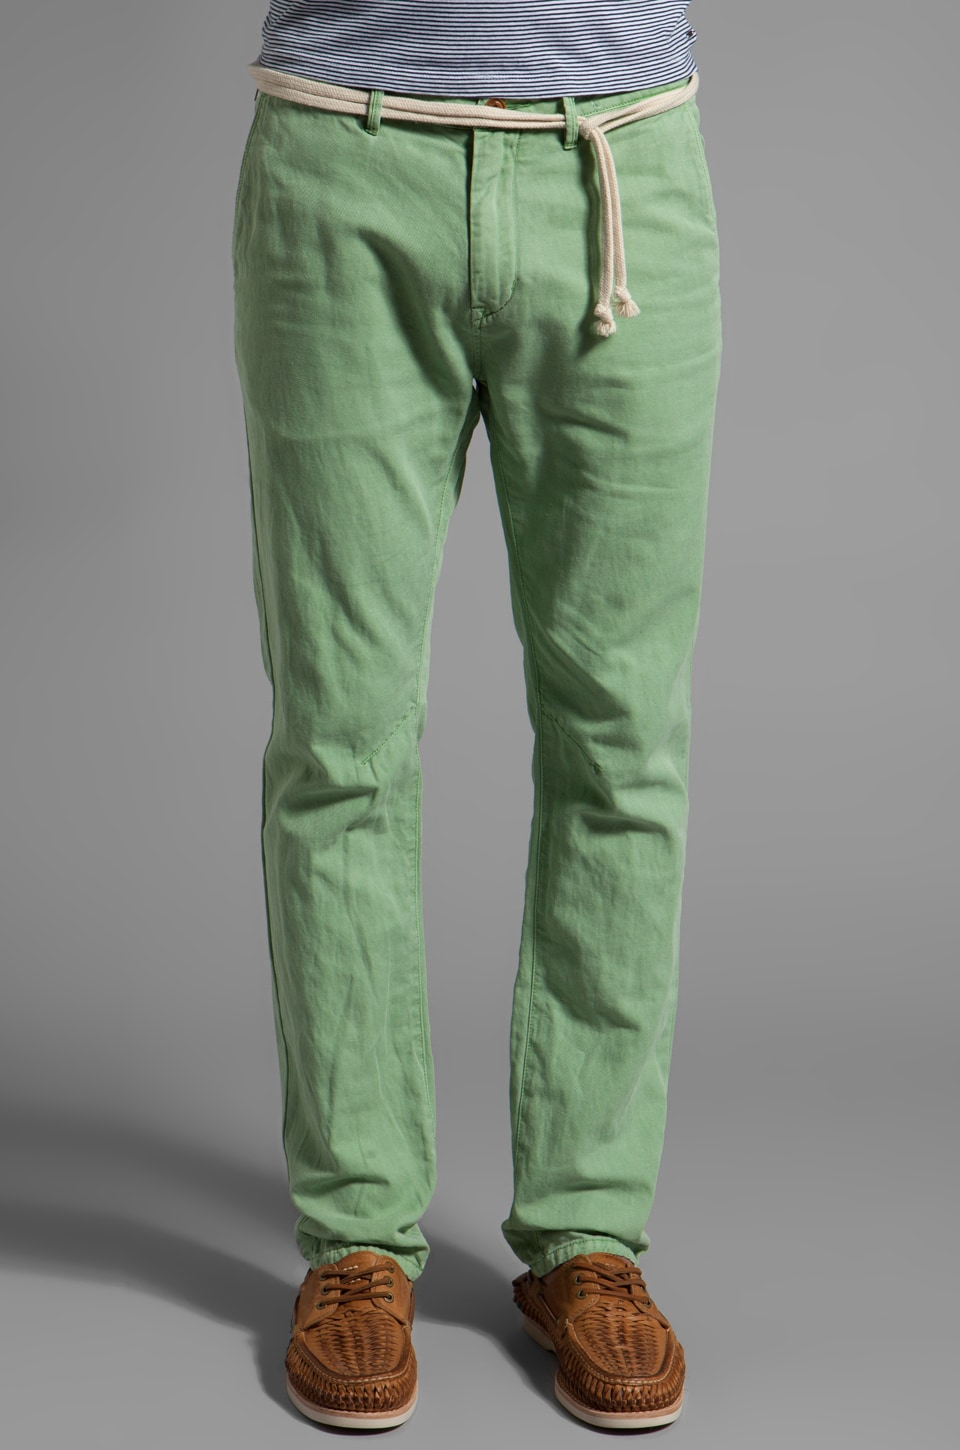 Scotch & Soda Belted Beach Chino Pant in Mint